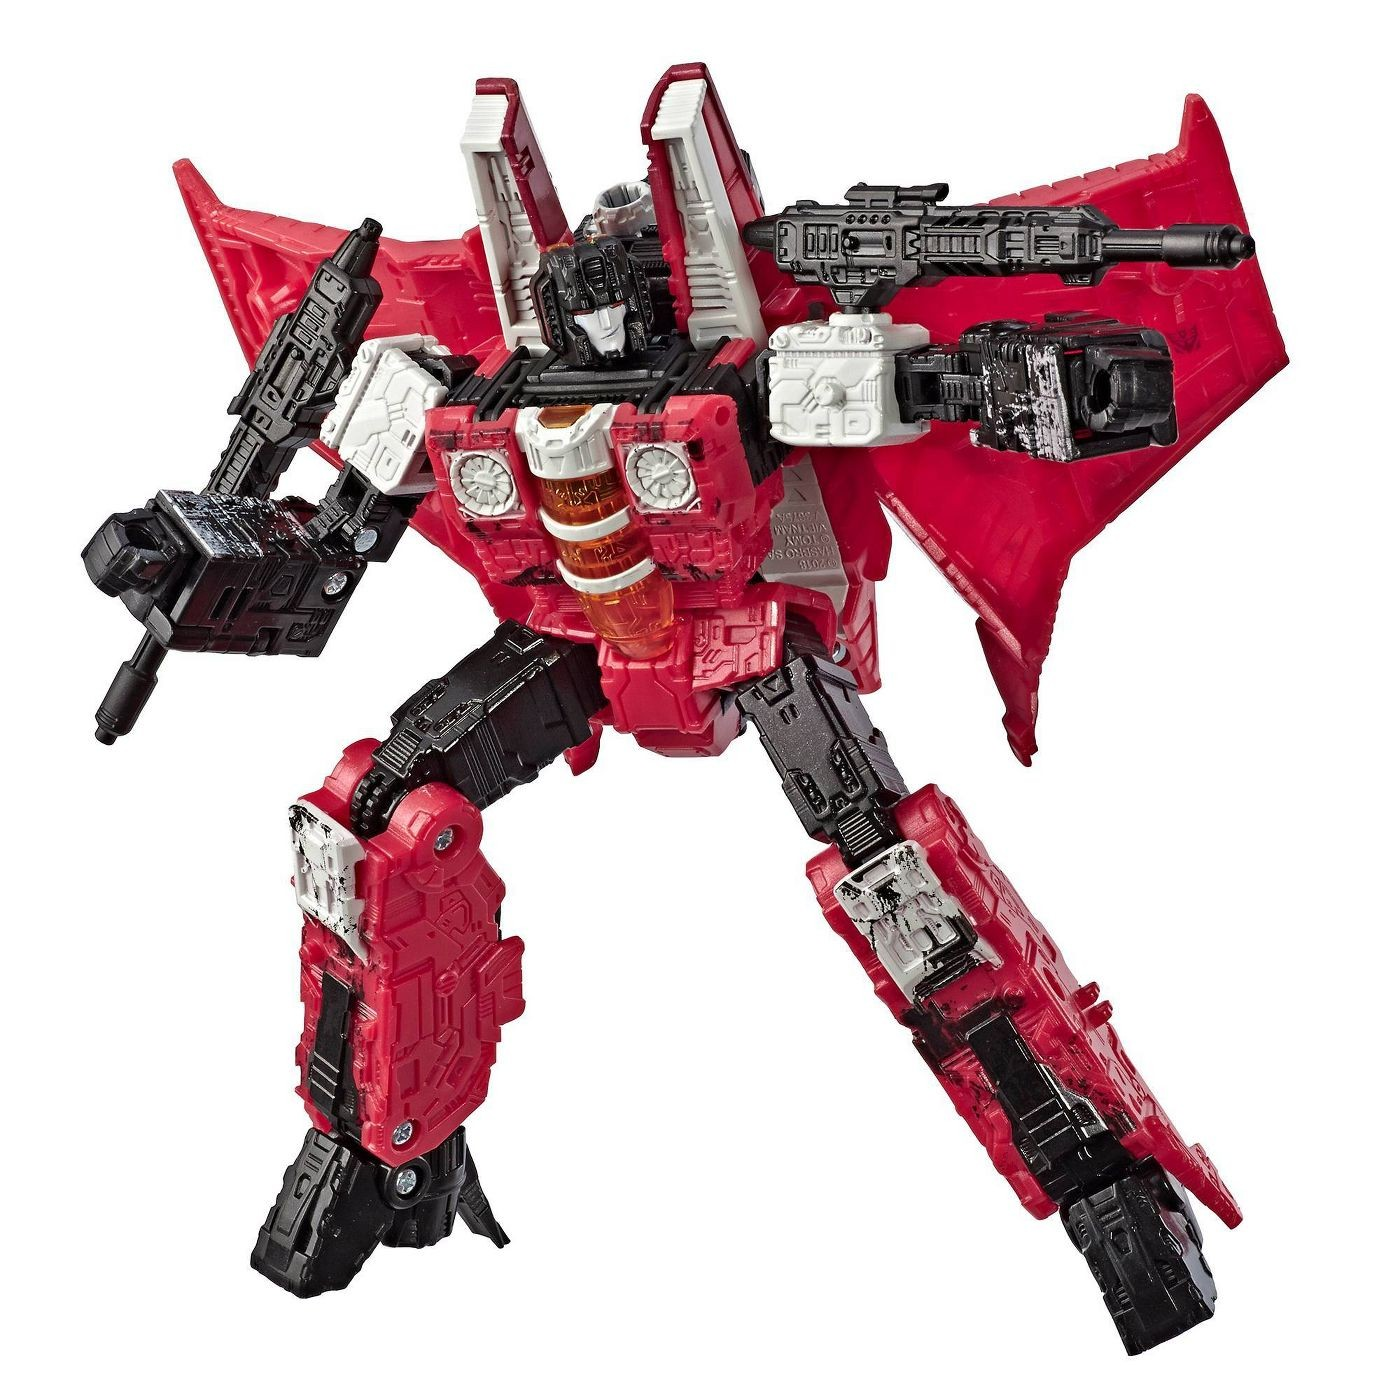 Transformers News: Transformers Generations SELECTS Red Wing Available for Pre Order As A Target RedCARD Exclusive